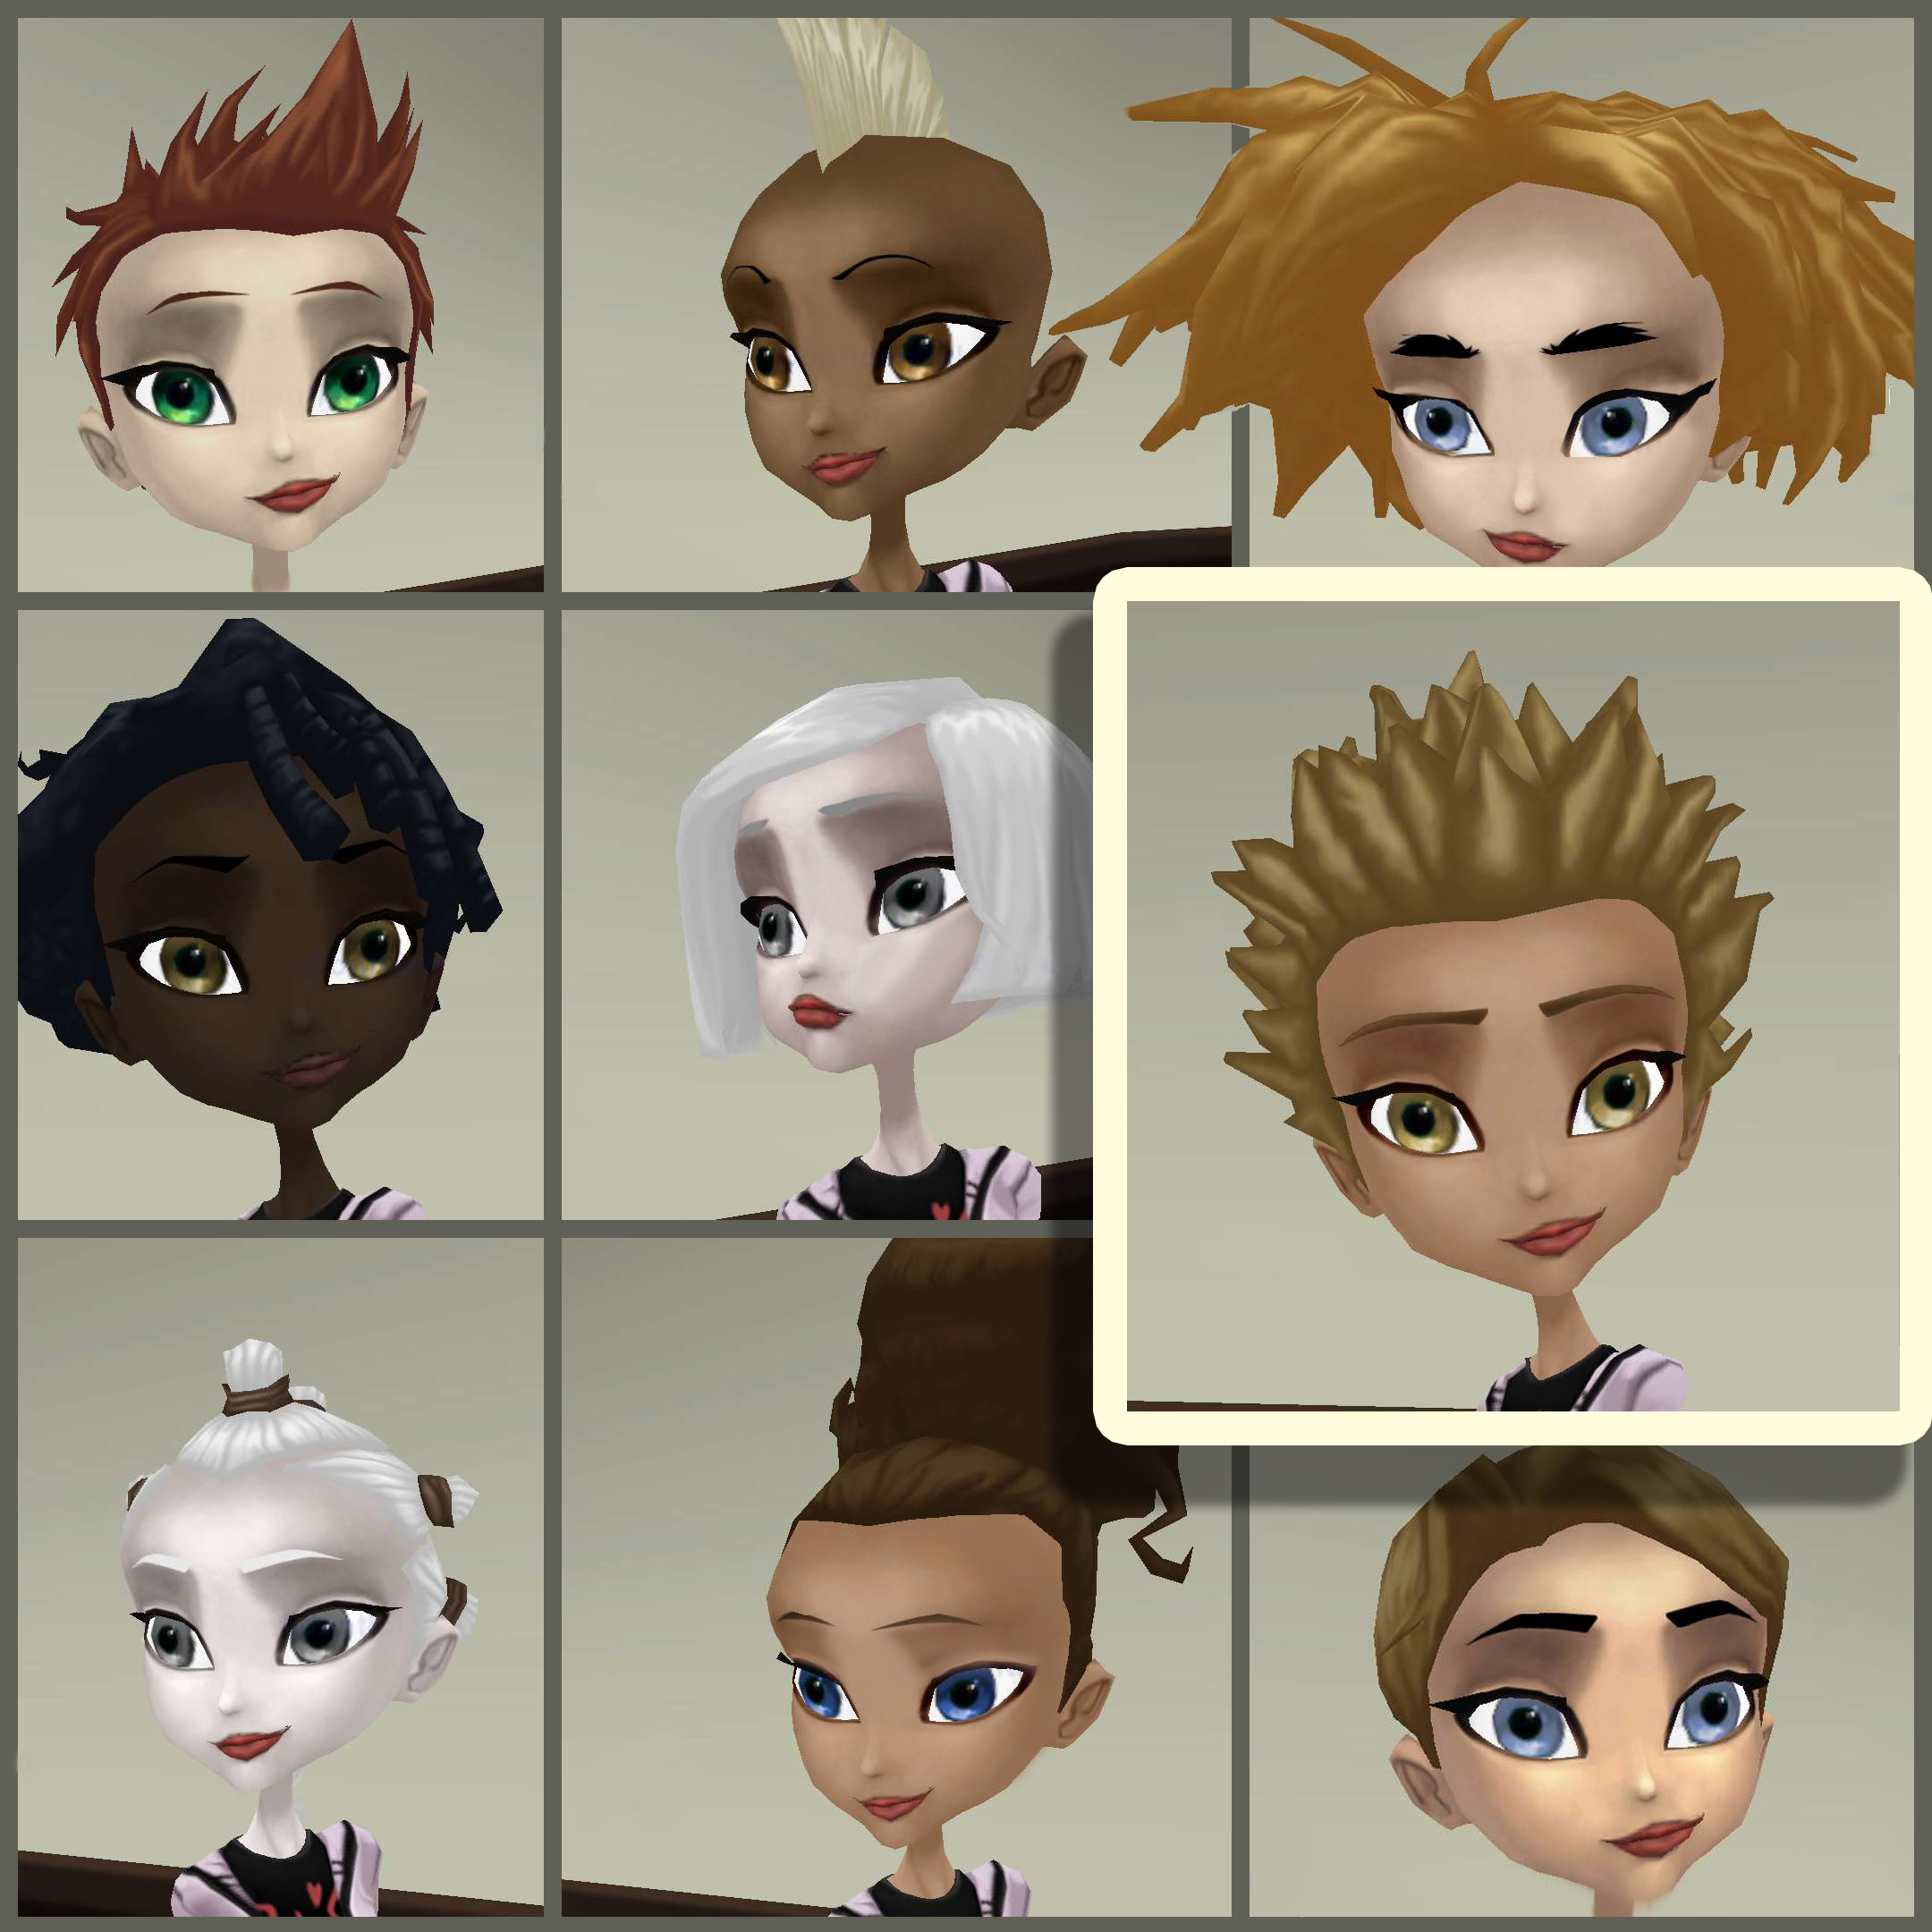 Hairstyles galore!